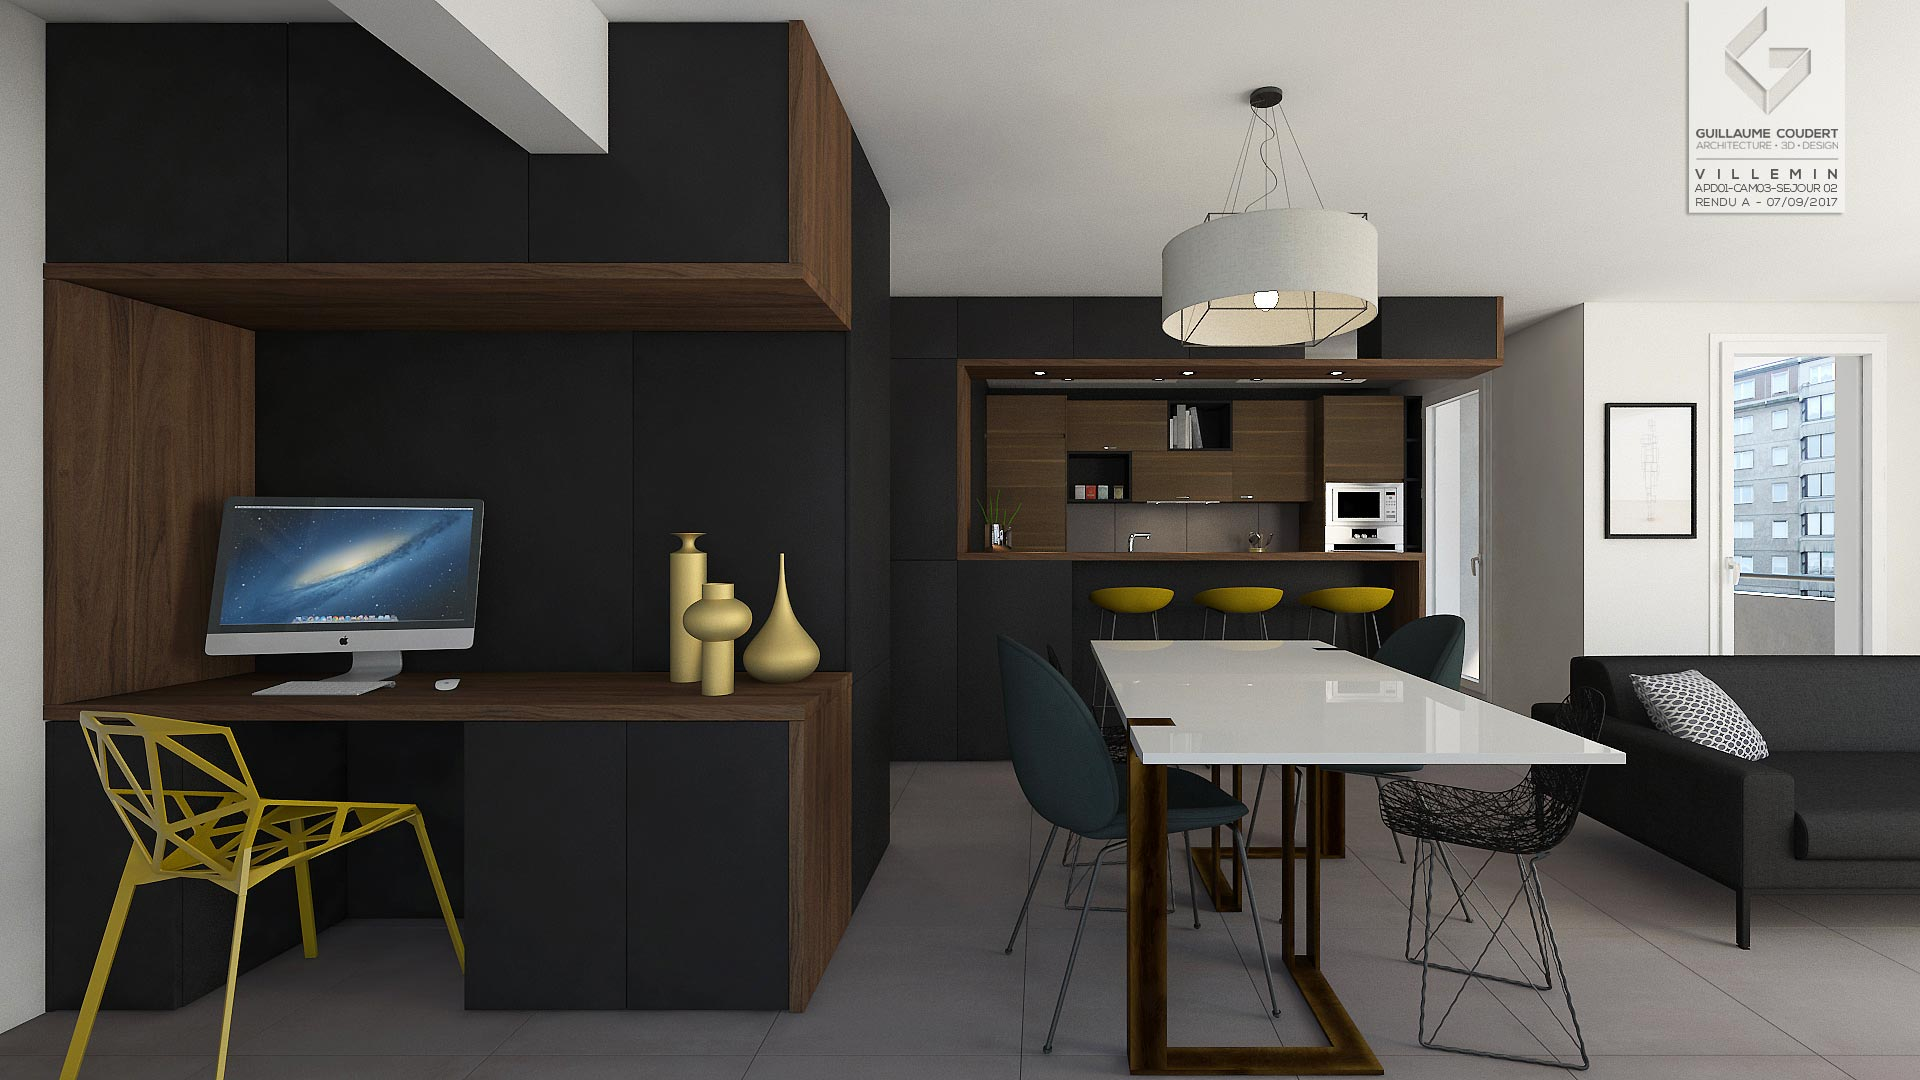 appartement vil01 lyon 69007 guillaume coudert architecture d 39 int rieur. Black Bedroom Furniture Sets. Home Design Ideas